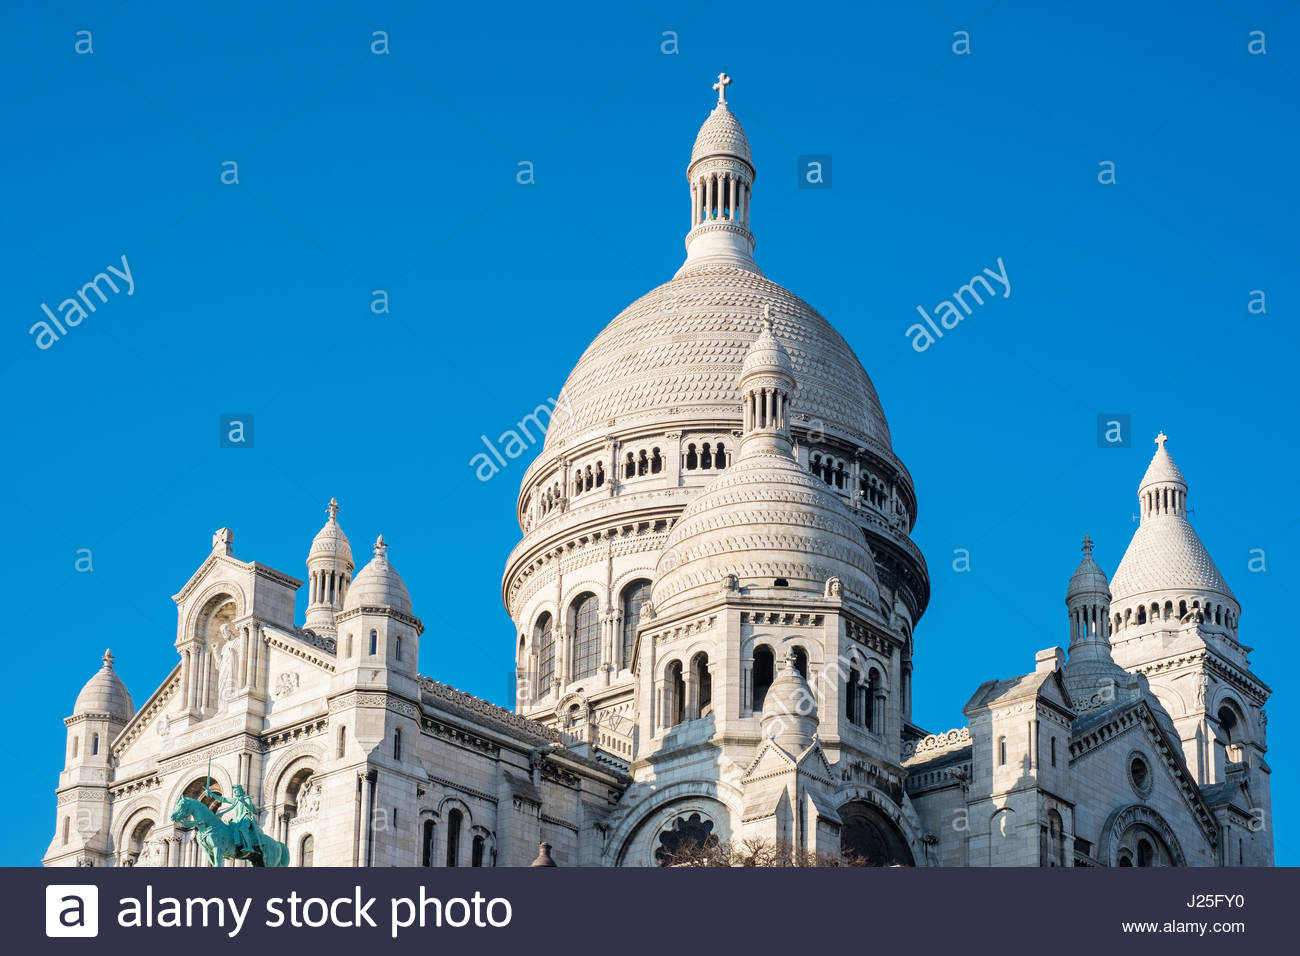 France, Île-de-France, Paris. Basilica of Sacre Coeur, Montmartre. - Stock Image